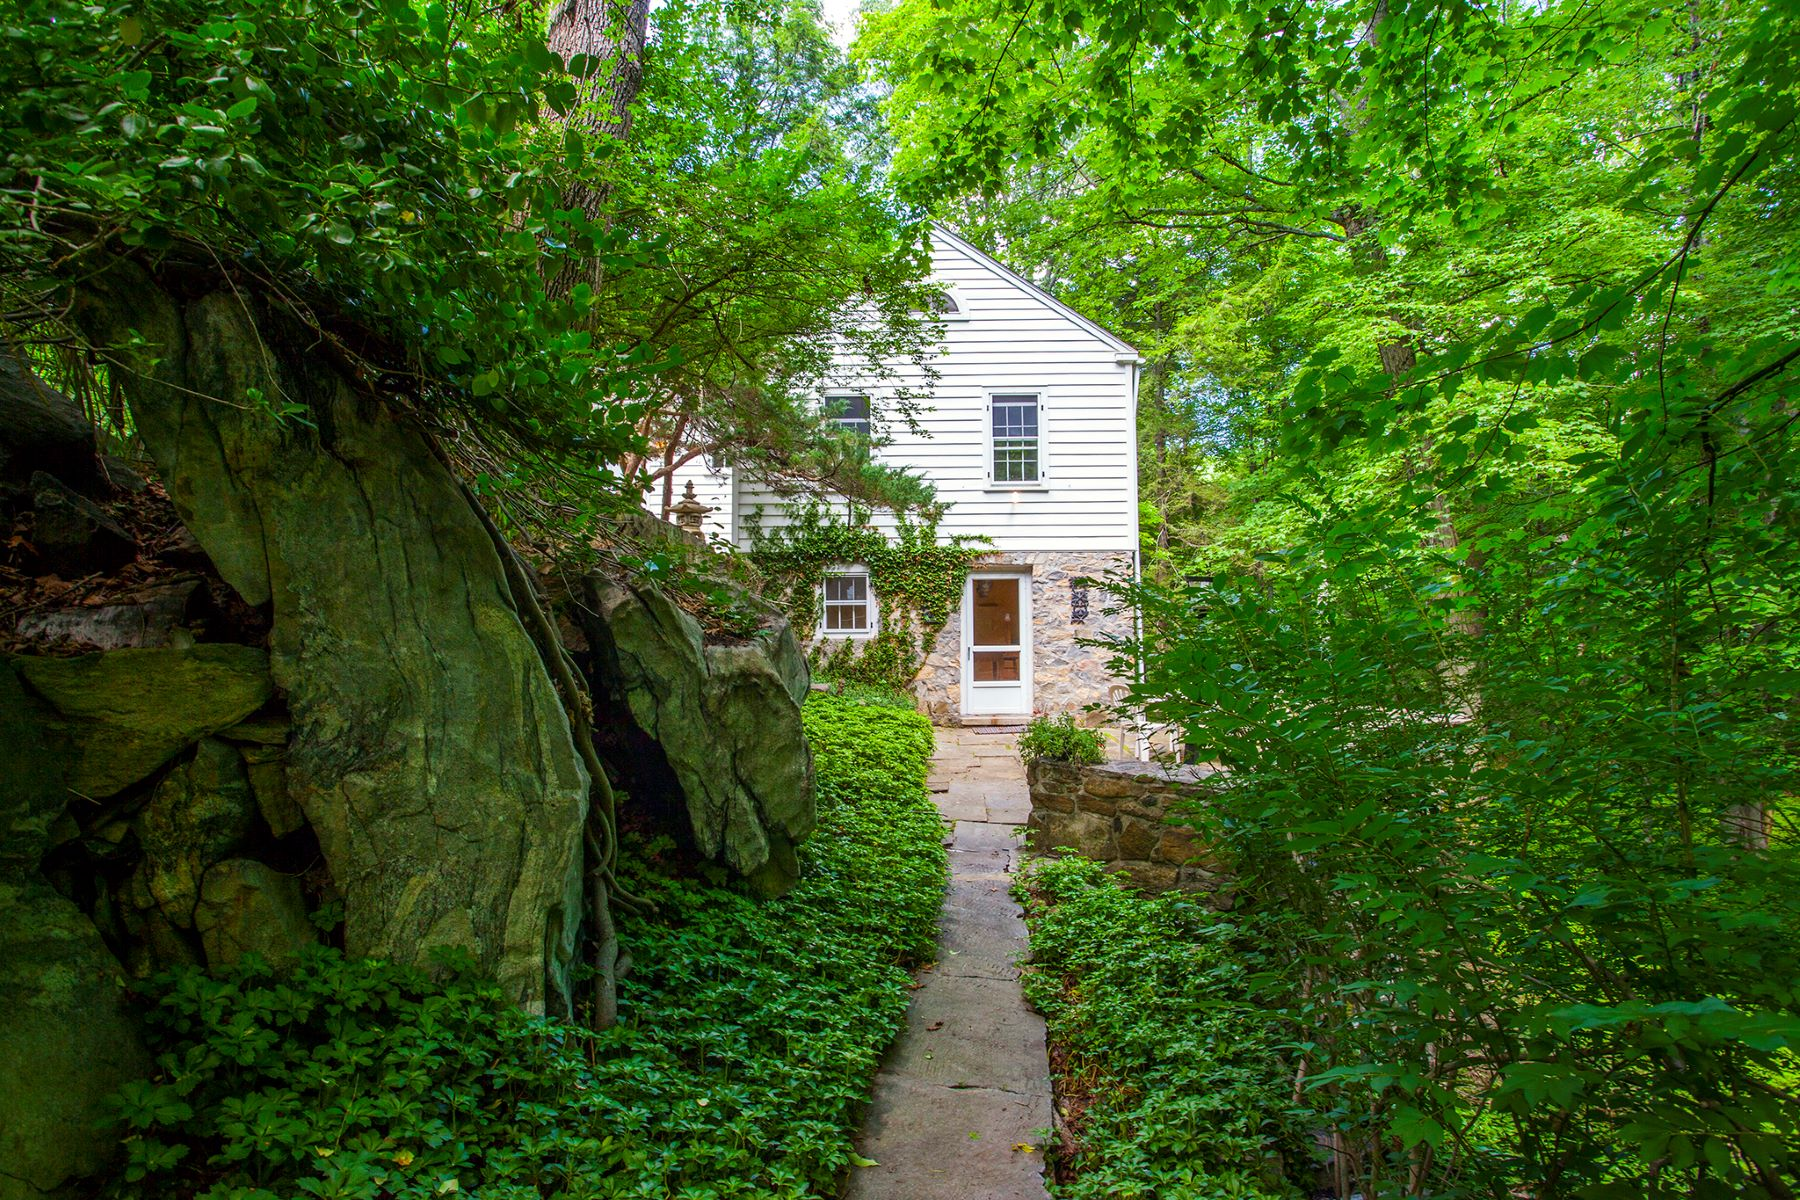 Single Family Homes for Sale at Charming Riverside Cottage 618 Kent Road, New Milford, Connecticut 06755 United States